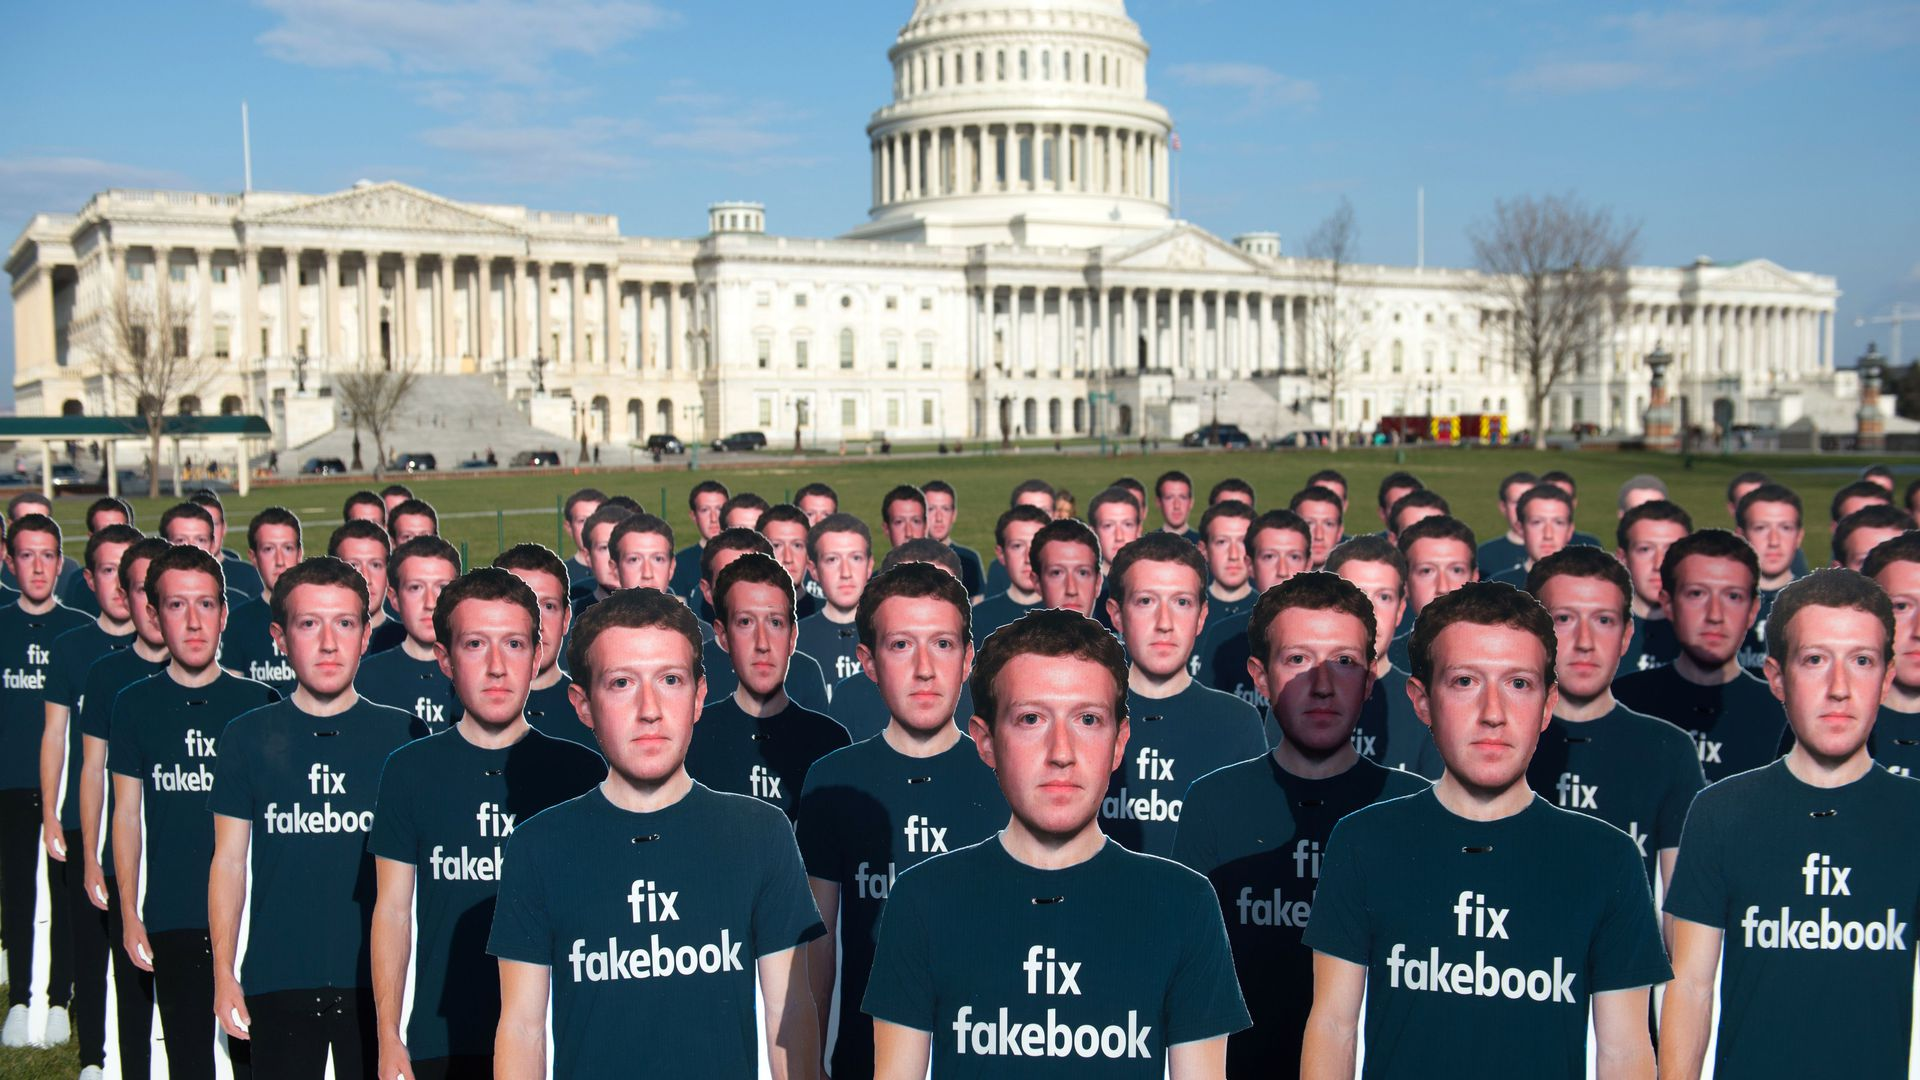 ne hundred cardboard cutouts of Facebook founder and CEO Mark Zuckerberg stand outside the US Capitol